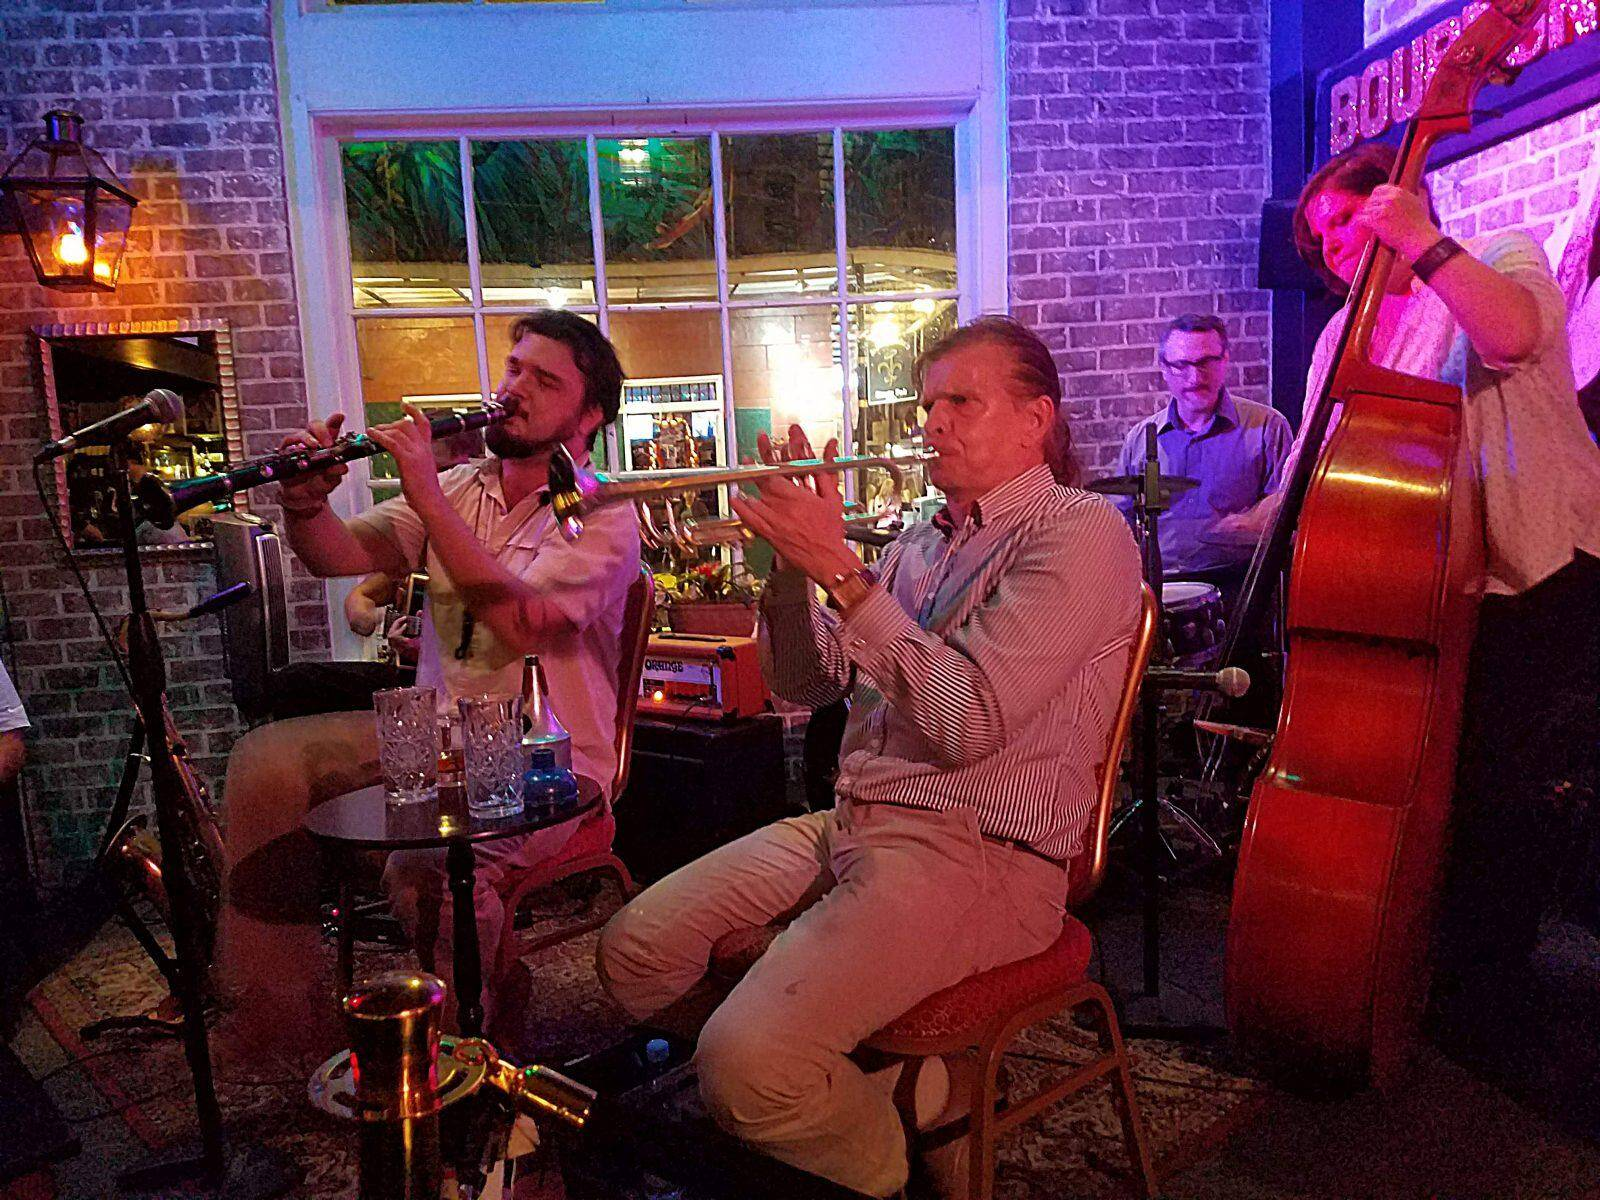 At the Bourbon O: Marty Peters, clarinet; Norbert Susemihl, trumpet; Barnaby Gold, drums; and Tasha Powers, bass. (photo by Ken Arnold)